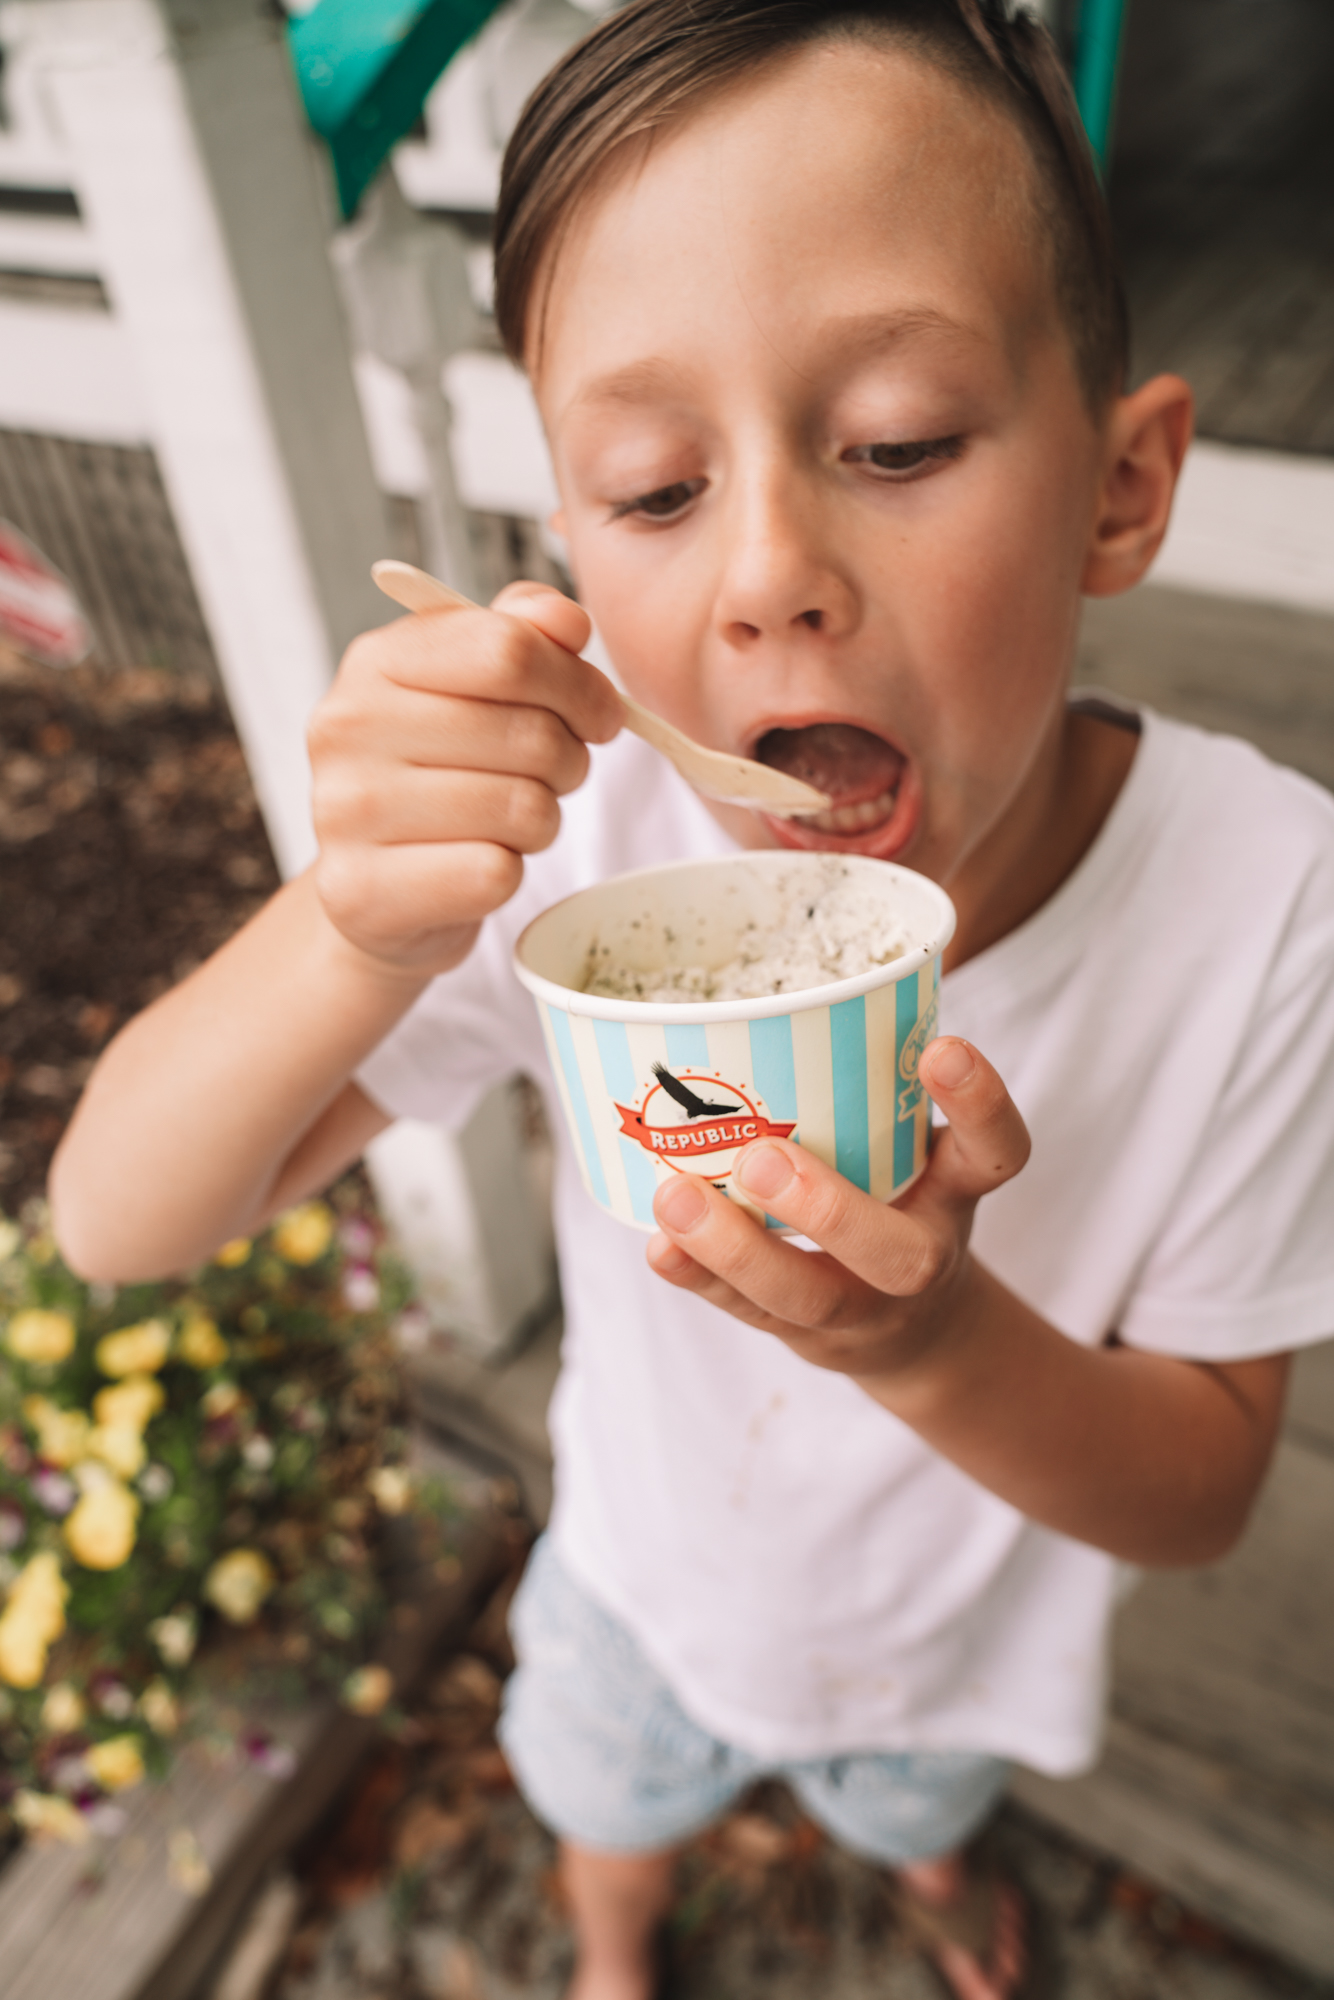 charleston sc visitors guide - a little boy devours his ice cream